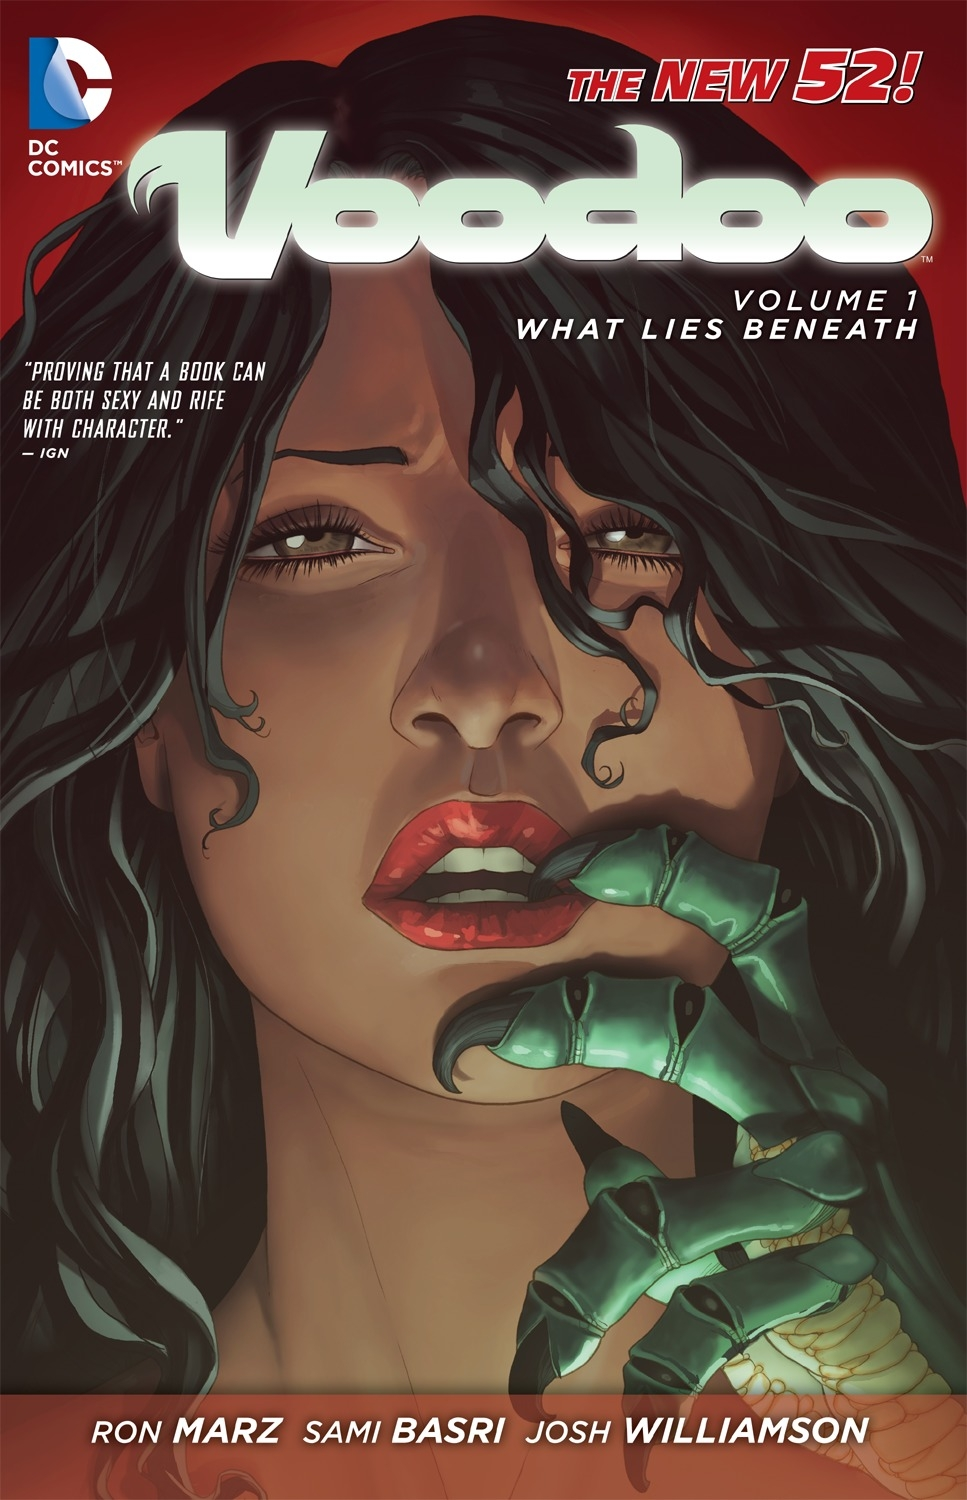 Voodoo Vol. 1: What Lies Beneath (The New 52)